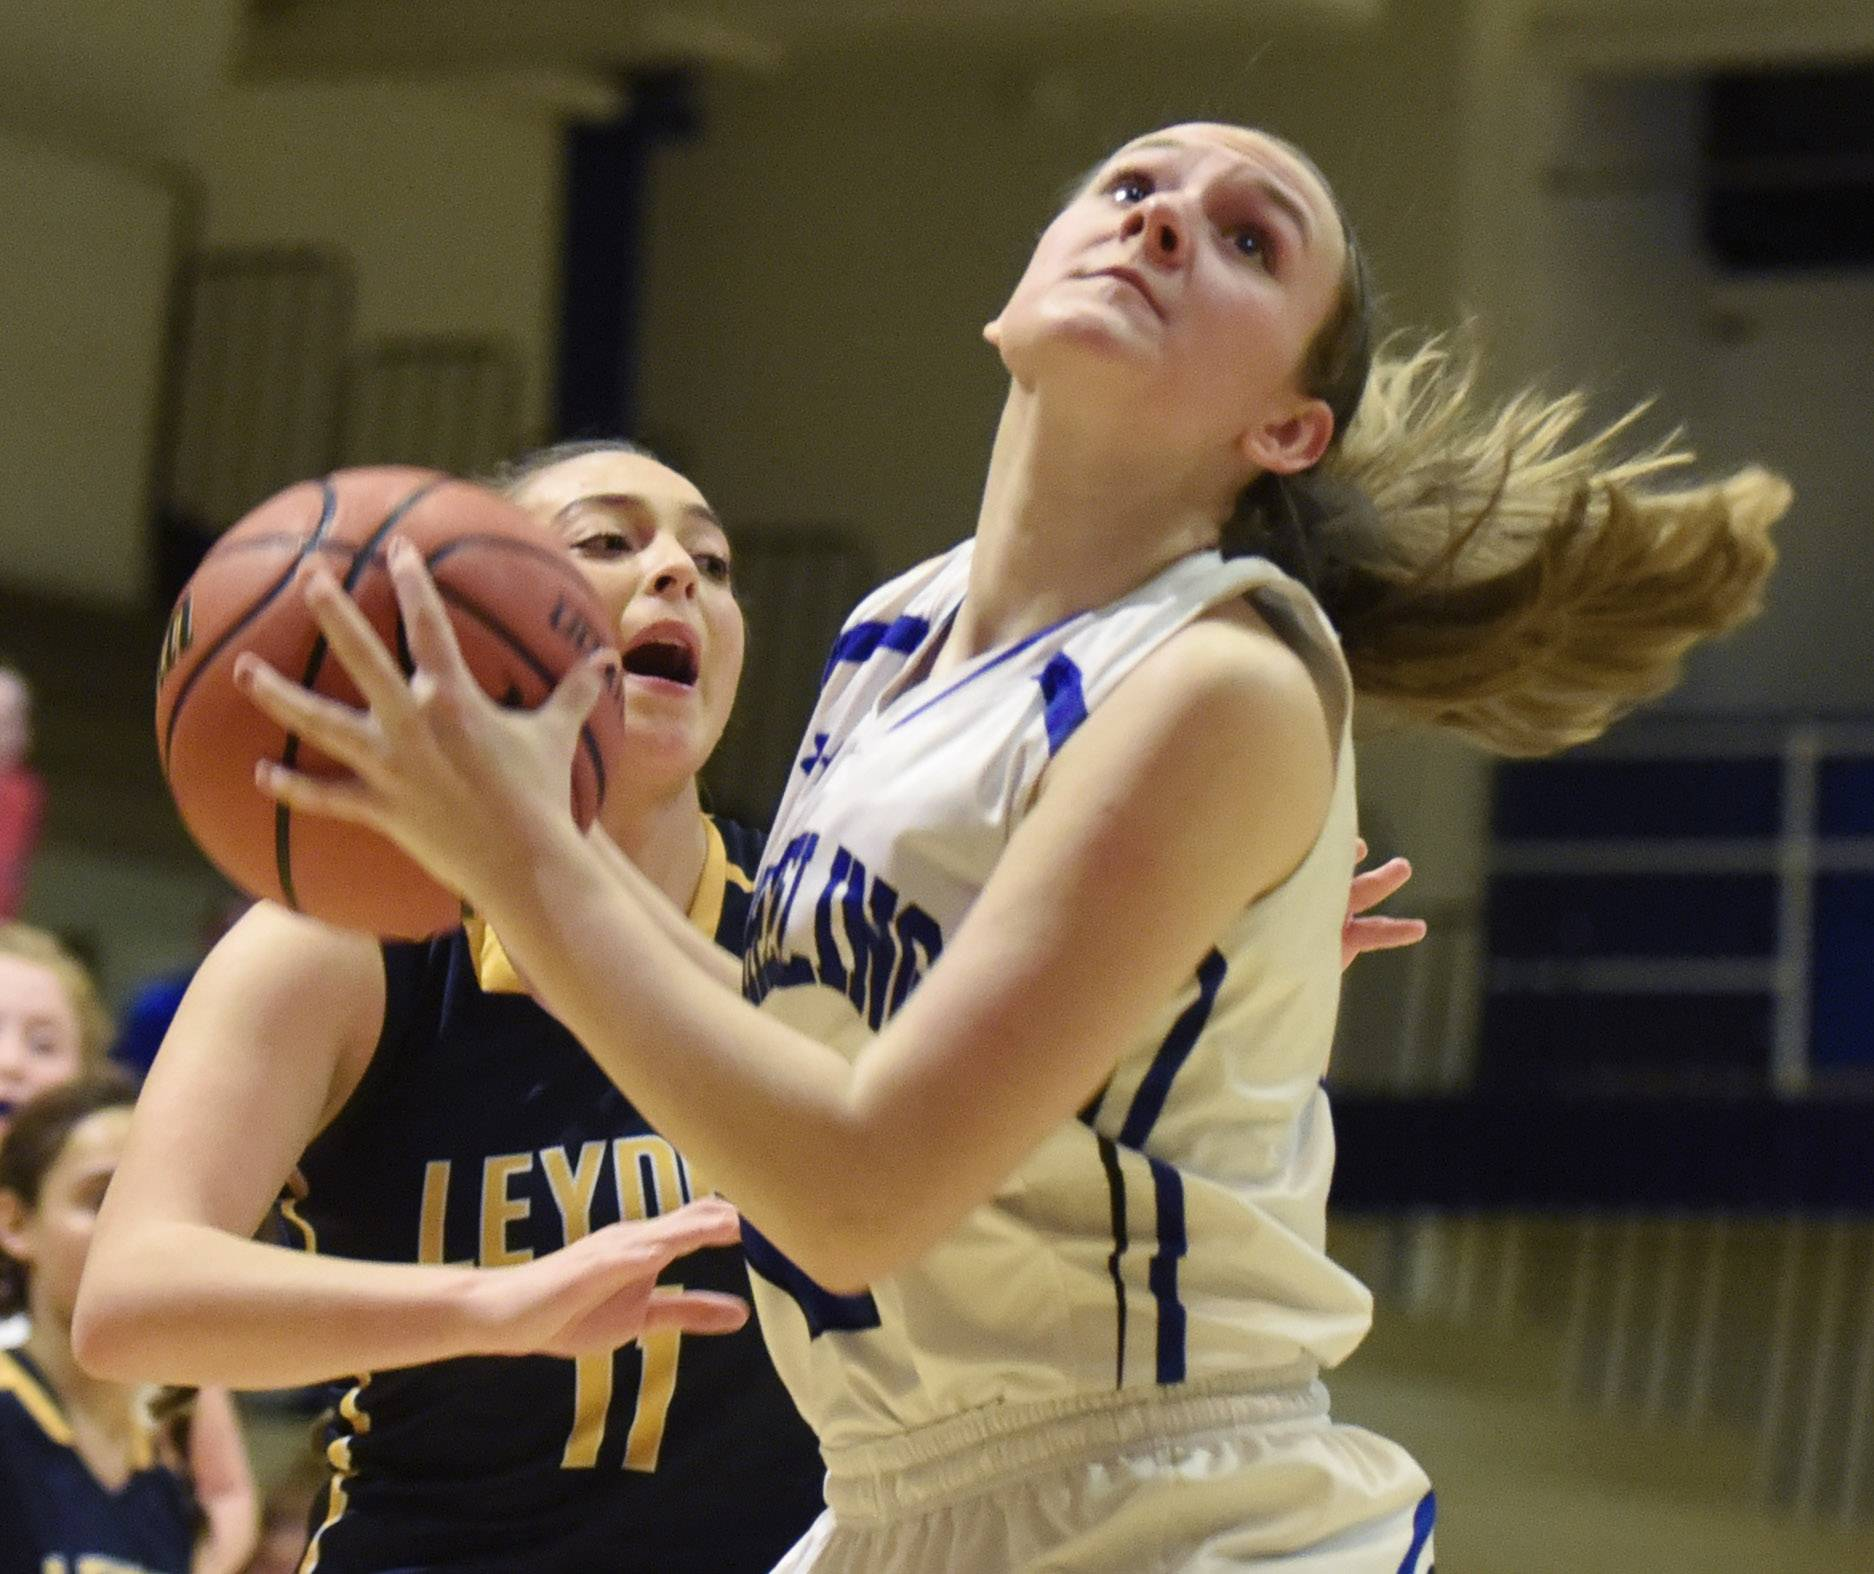 Wheeling's Morgan Collar makes a move to the basket in front of Leyden's Ginani Badillo during Tuesday's game.